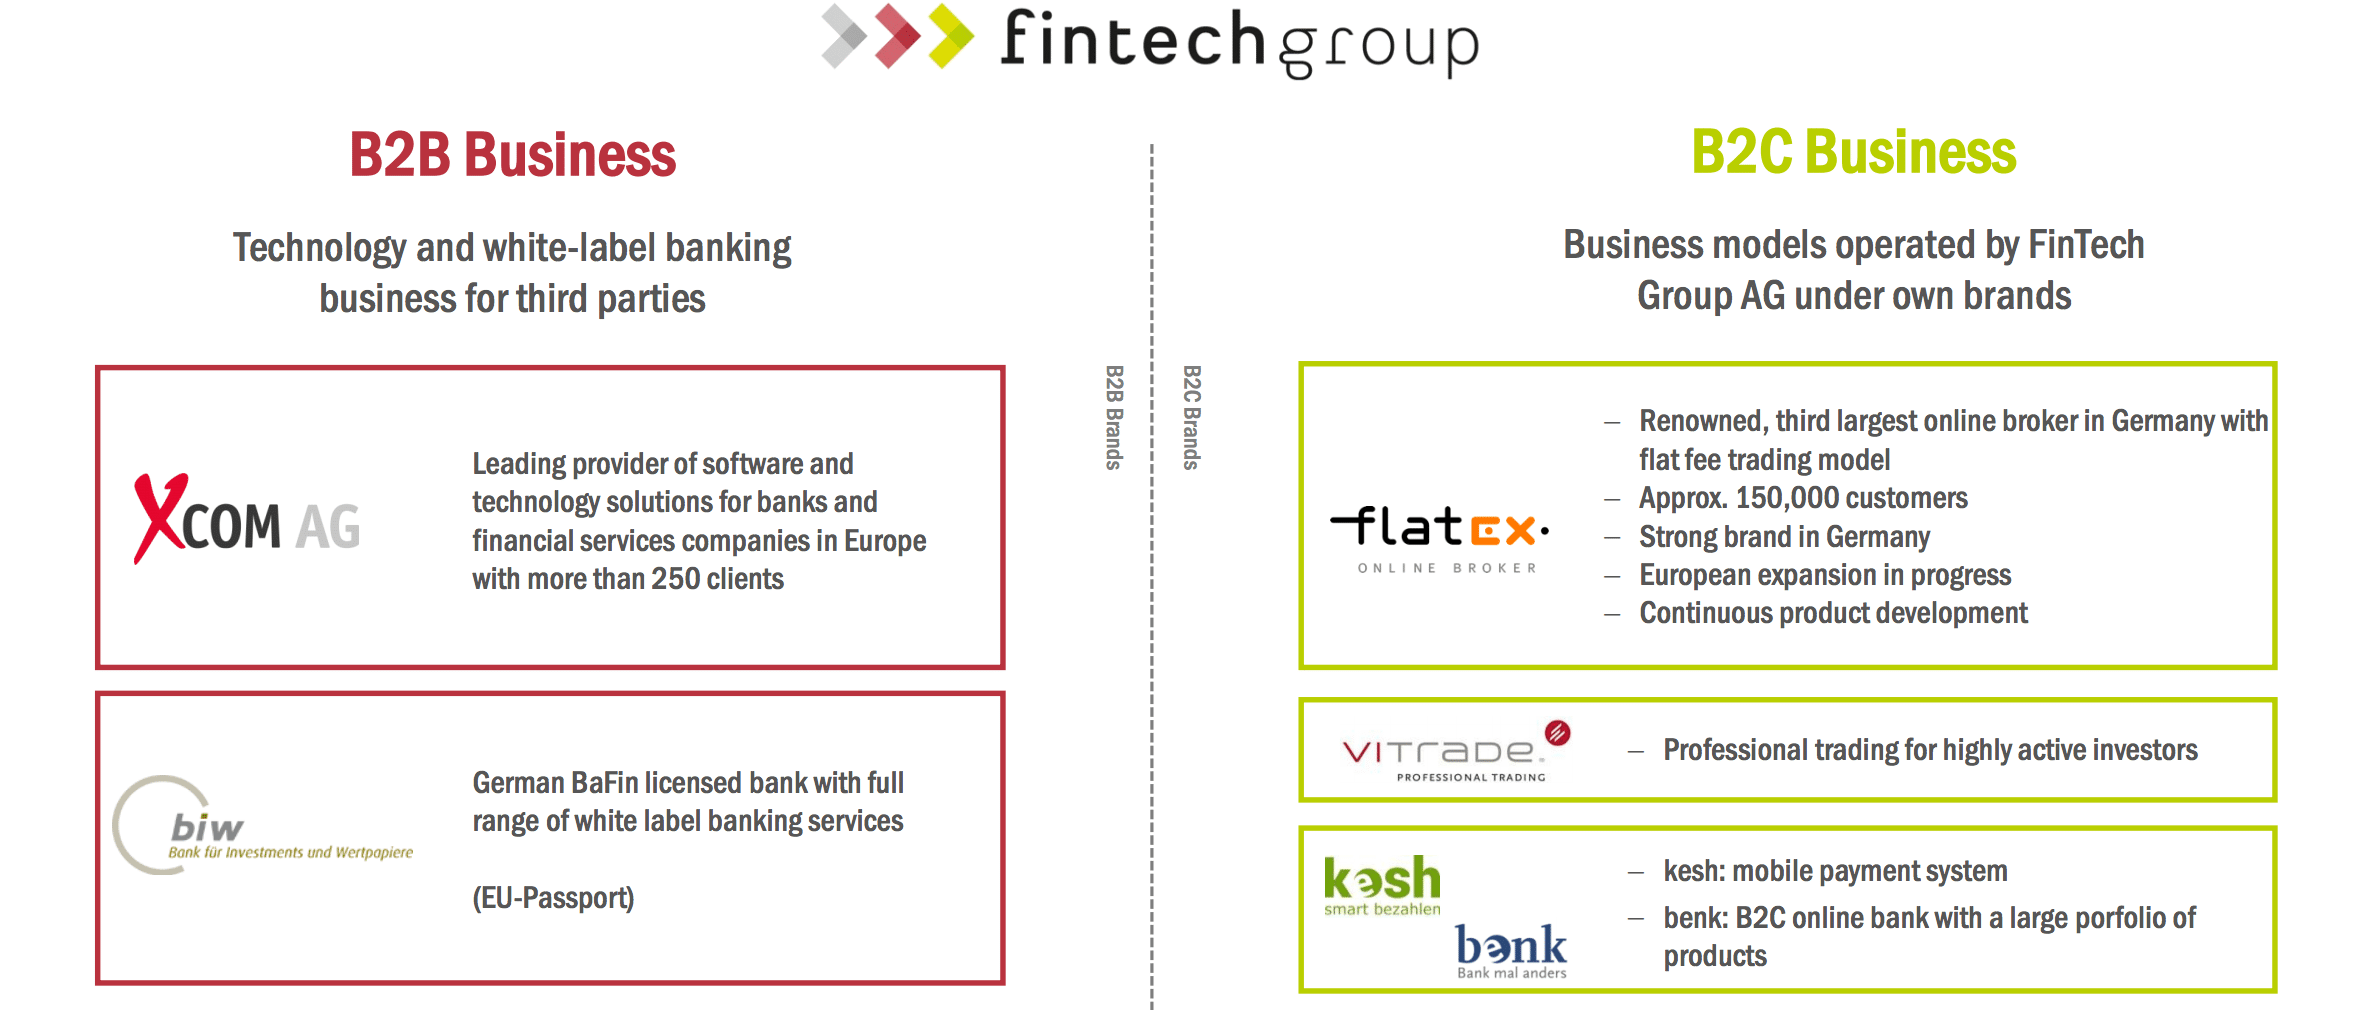 Source: FinTech Group AG 2015 full results